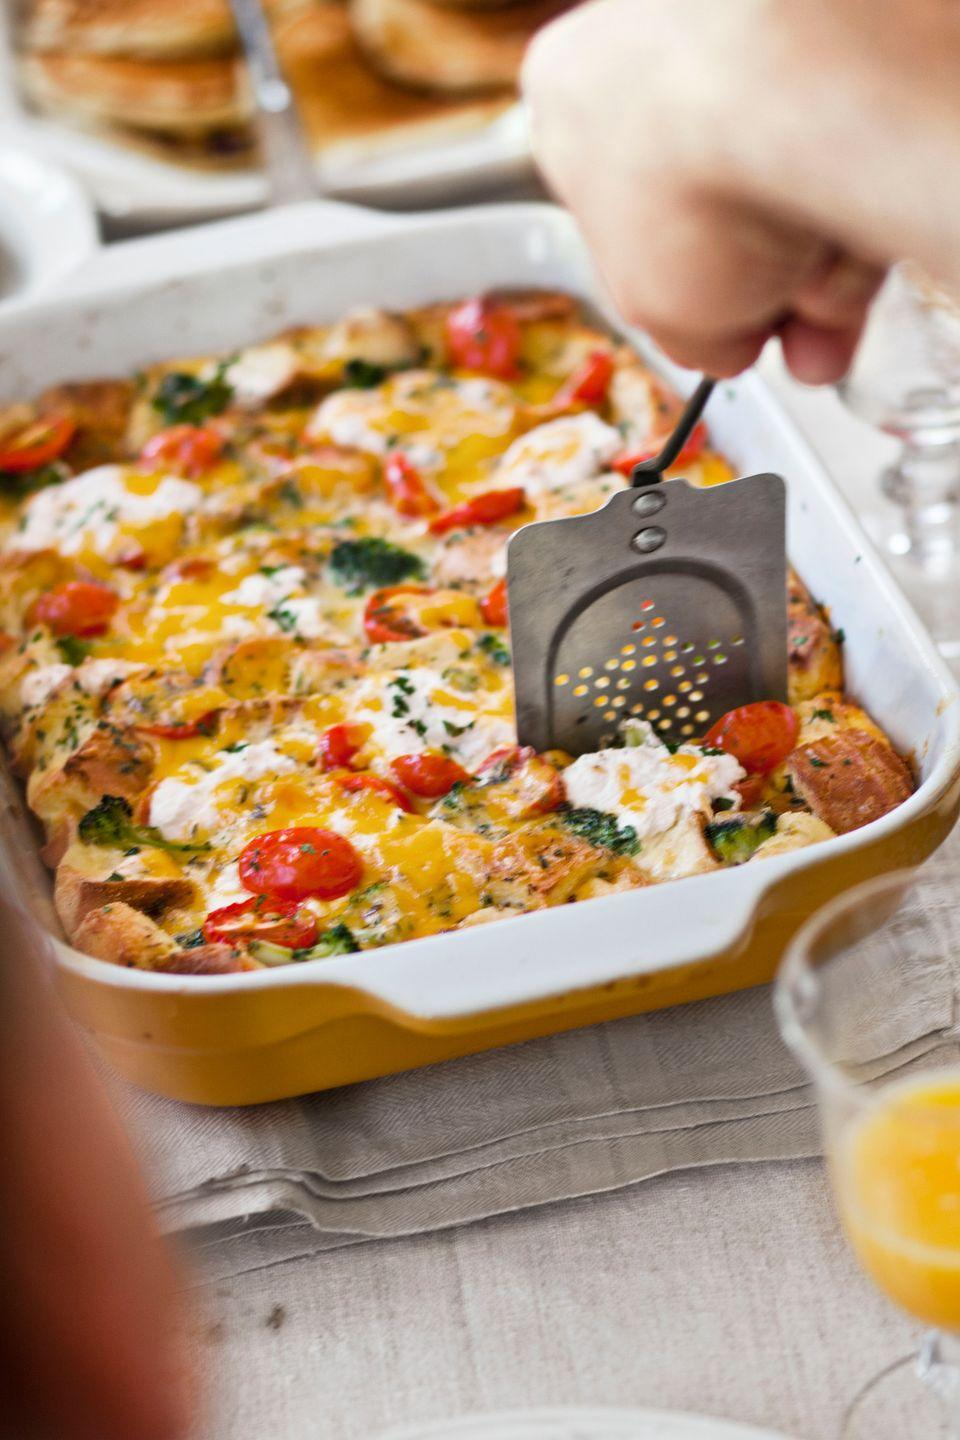 """<p>Comfort food doesn't get much better than a crowd-pleasing strata. You can assemble this <a href=""""https://www.countryliving.com/food-drinks/g13/cookbook-eggs-0407/"""" rel=""""nofollow noopener"""" target=""""_blank"""" data-ylk=""""slk:egg"""" class=""""link rapid-noclick-resp"""">egg</a> casserole—loaded with French bread, tomatoes, and broccoli, and topped with both Cheddar and ricotta cheeses—the night before.</p><p><strong><a href=""""https://www.countryliving.com/food-drinks/recipes/a4115/tomato-cheddar-strata-broccoli-recipe-clv0212/"""" rel=""""nofollow noopener"""" target=""""_blank"""" data-ylk=""""slk:Get the recipe"""" class=""""link rapid-noclick-resp"""">Get the recipe</a>.</strong></p>"""